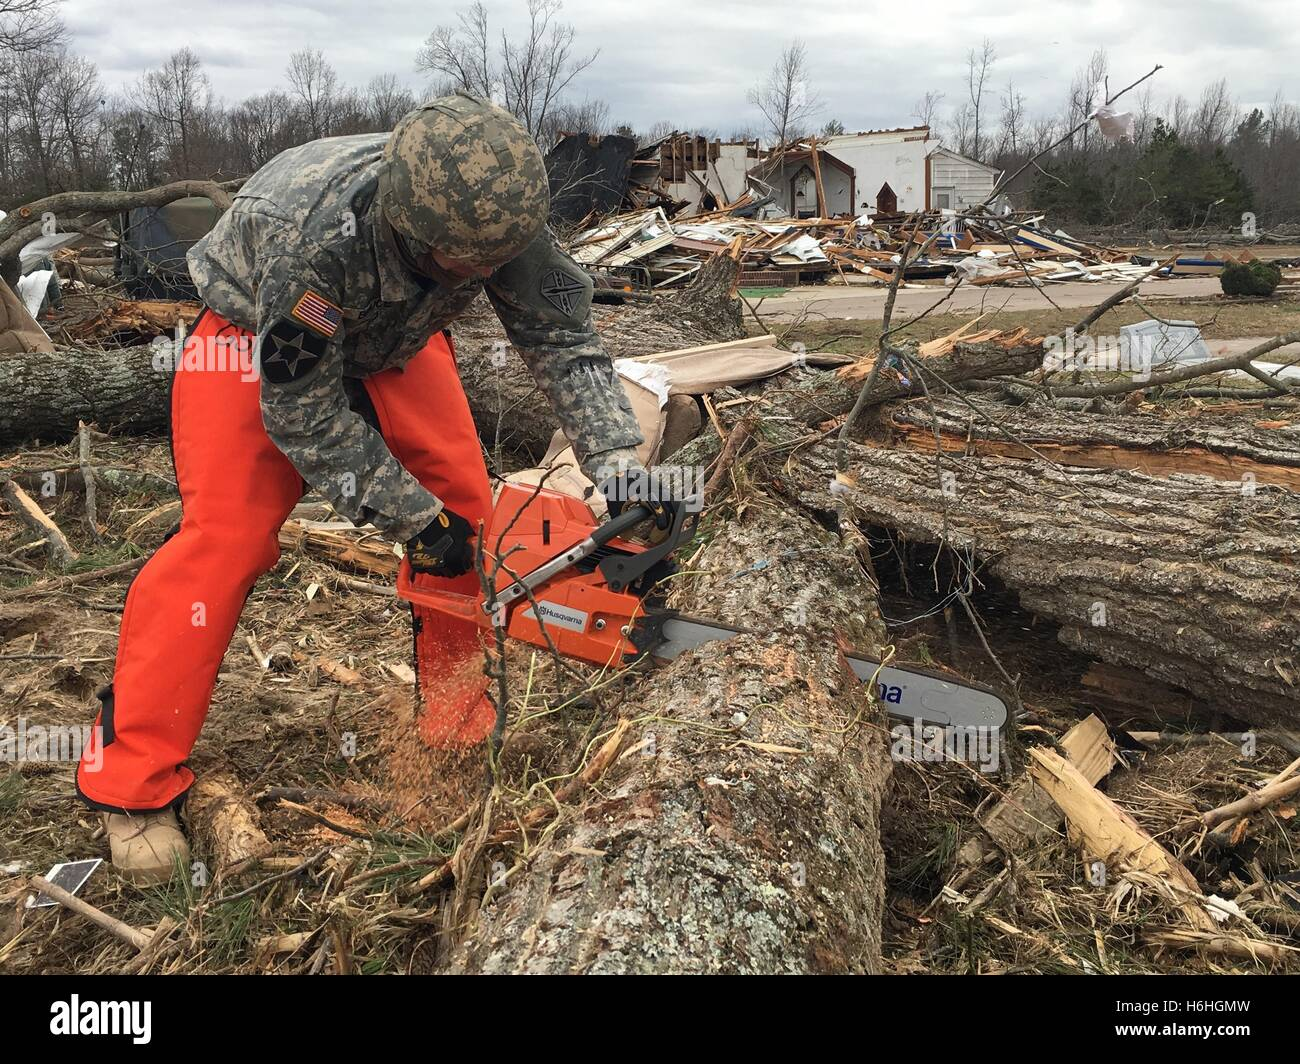 Soldiers In Trees Stockfotos & Soldiers In Trees Bilder - Alamy